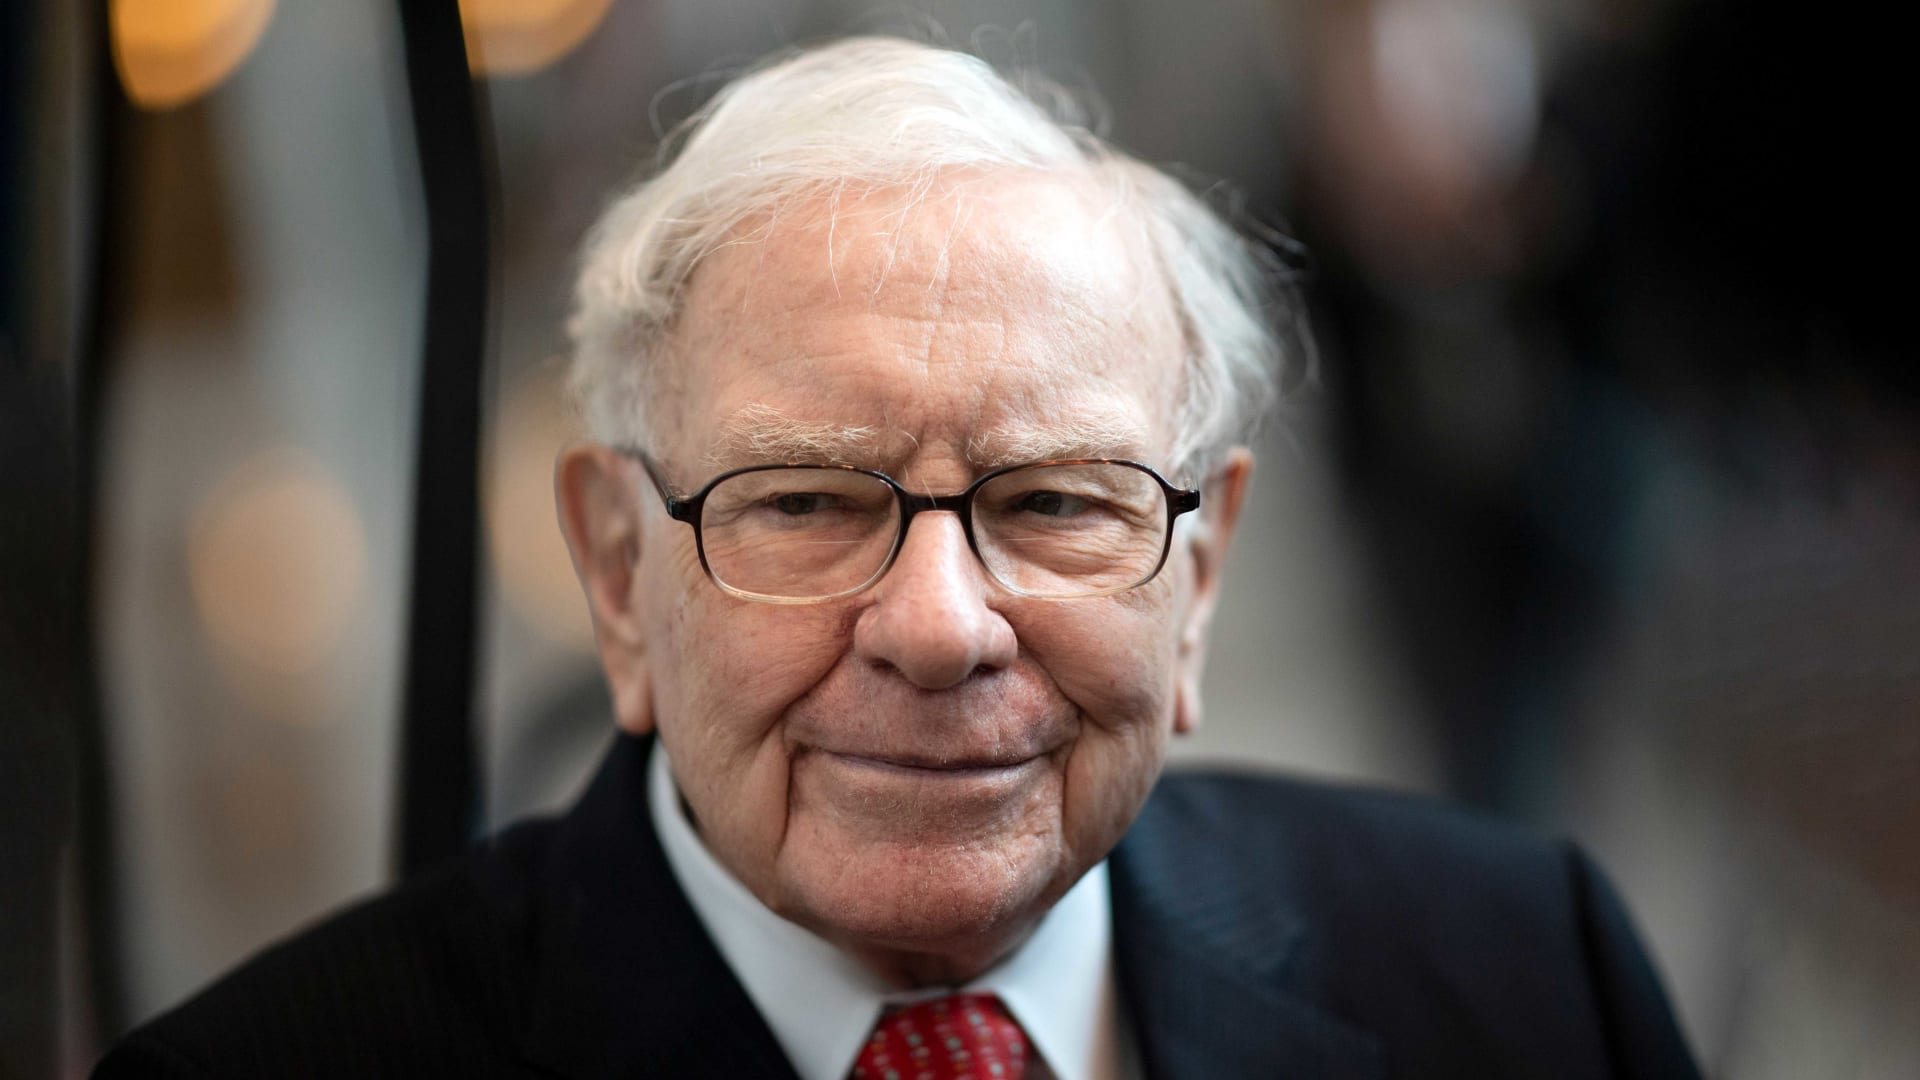 20 Years Ago, Warren Buffett Shared a Brutal Truth That Most People Have  Yet to Learn | Inc.com